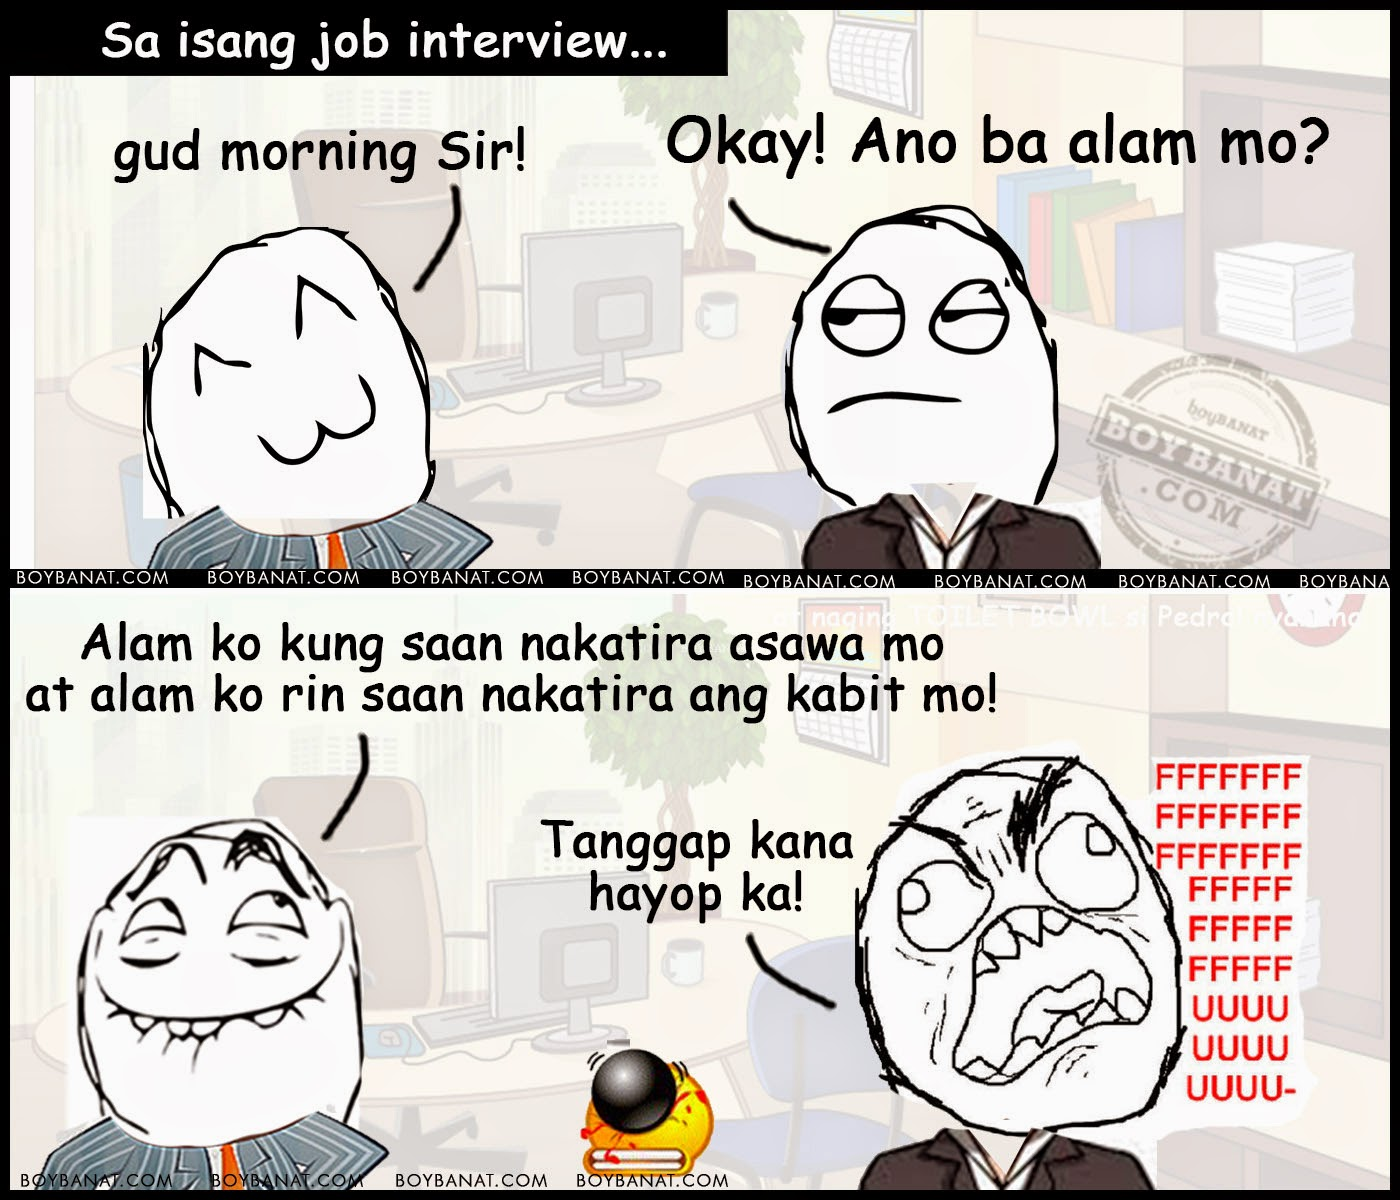 Tagalog Funny Applicant Jokes Collection